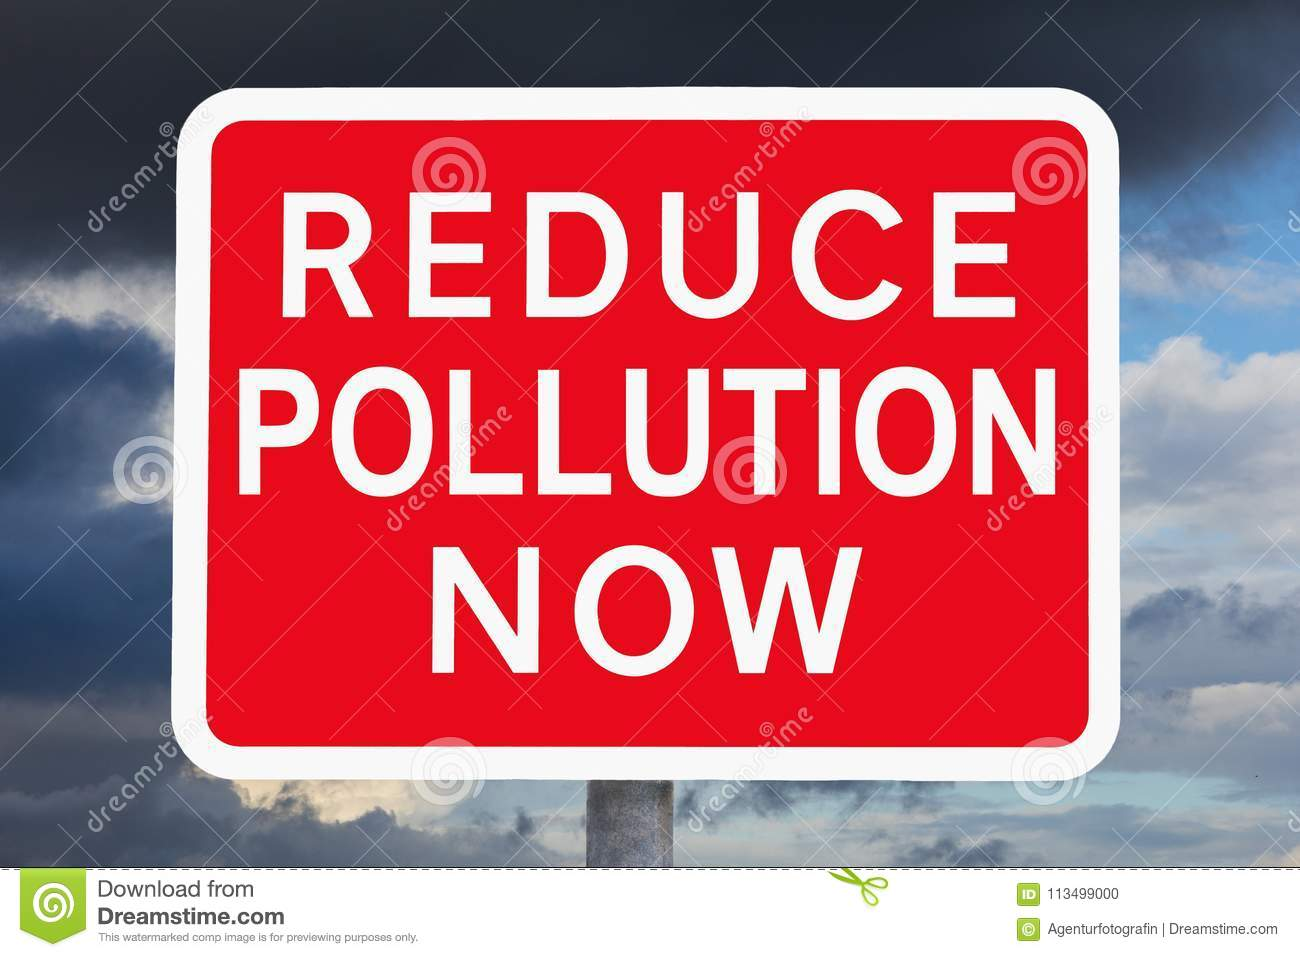 How To Reduse Pollution Warning Sign Reduce Pollution Now Stock Photo Image Of Politics